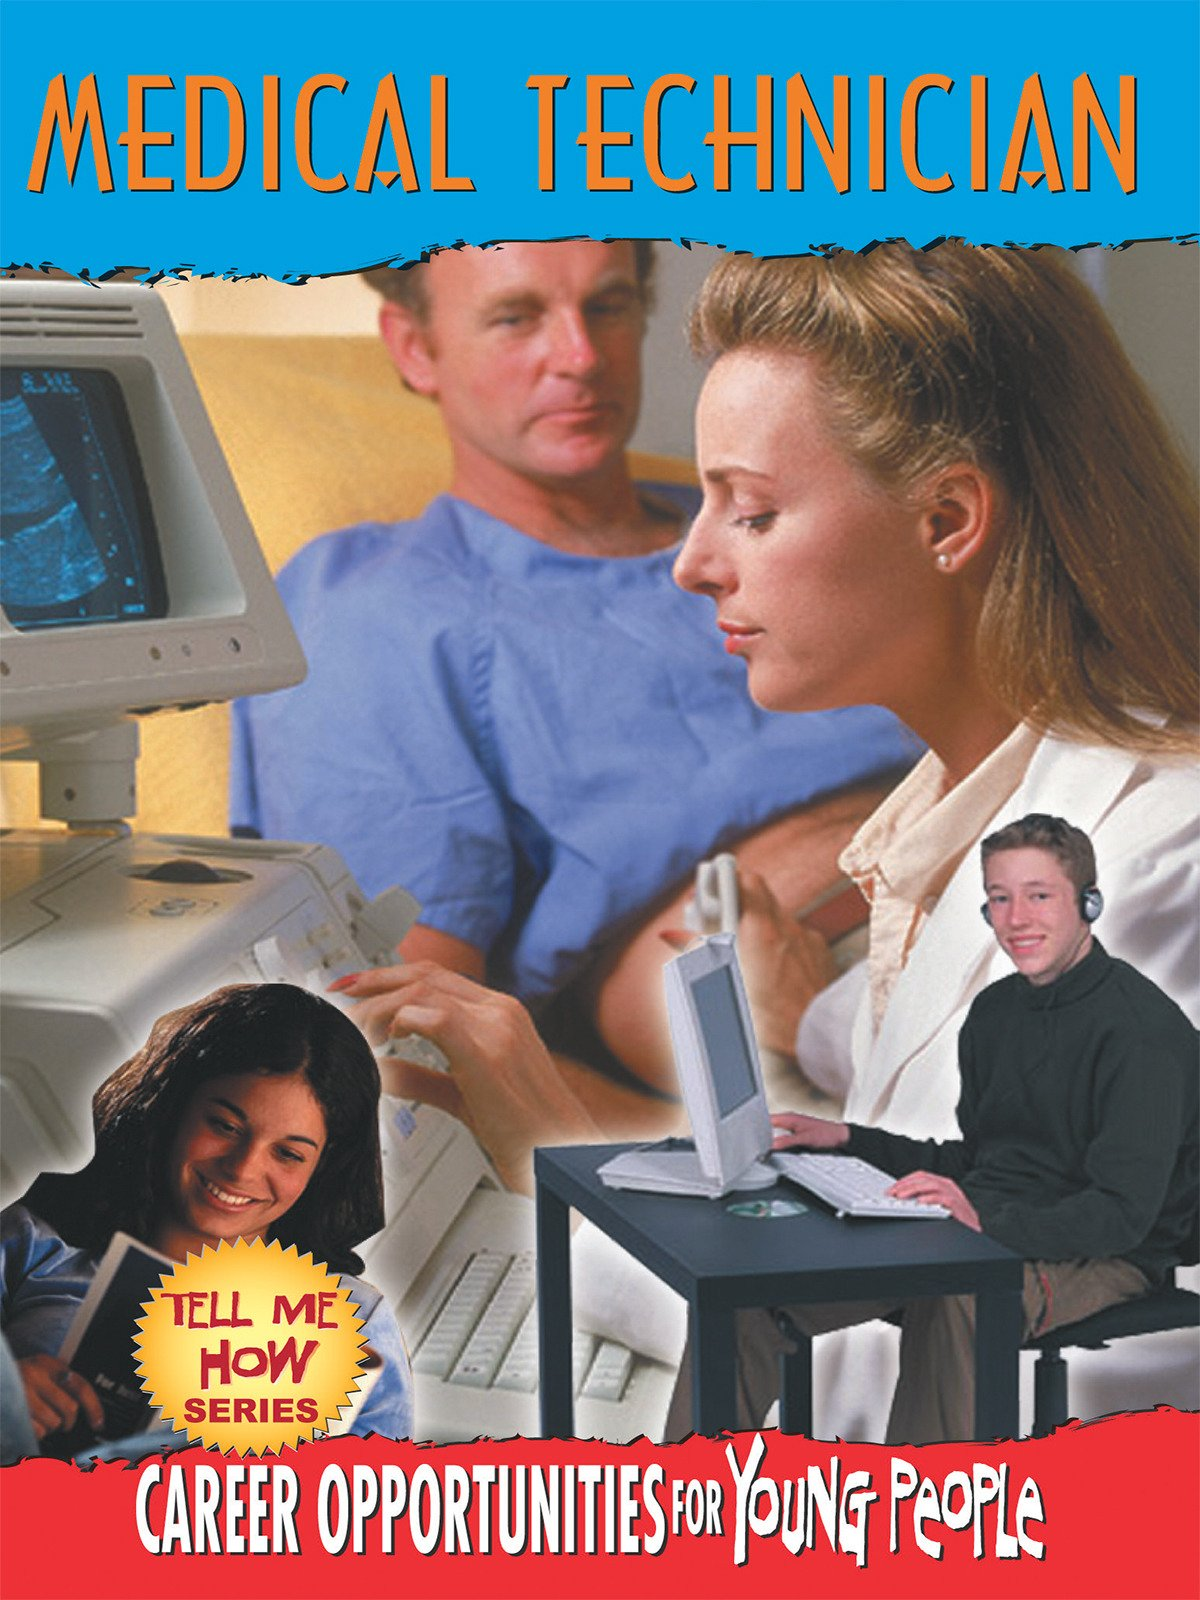 Tell Me How Career Series: Medical Technician on Amazon Prime Instant Video UK